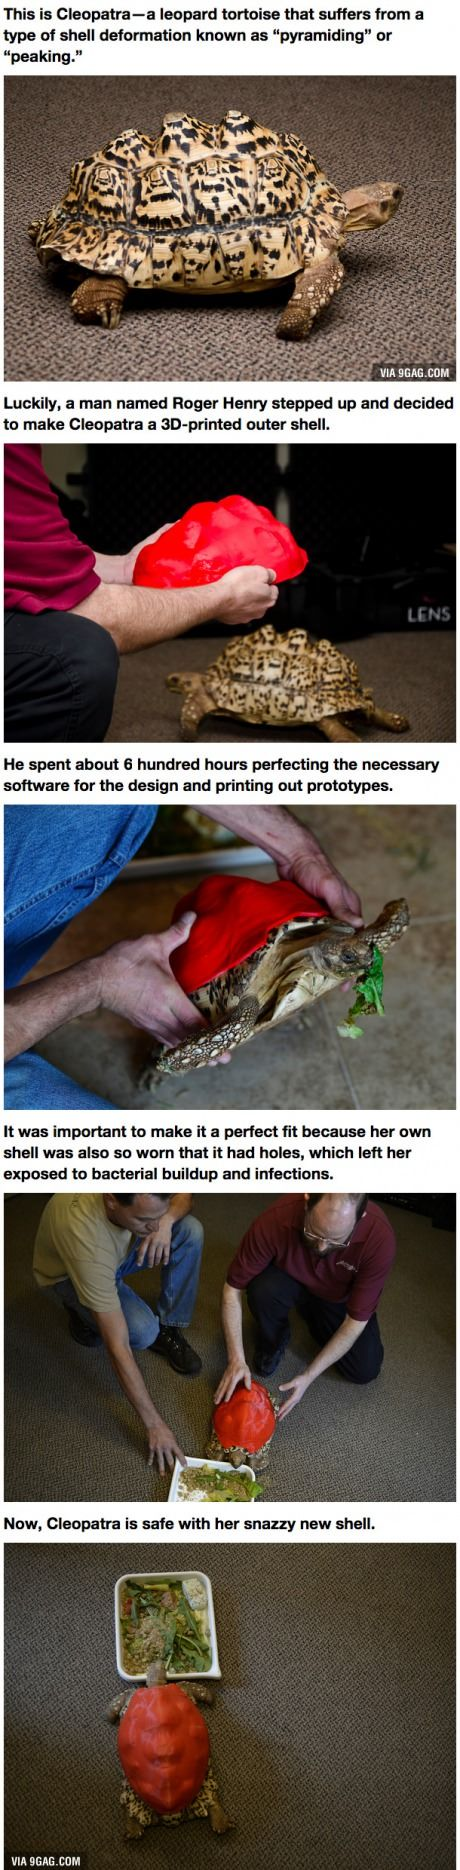 DPrinted Shell Helps Tortoise Gets A Second Chance At Life - Tortoise gets 3d printed shell